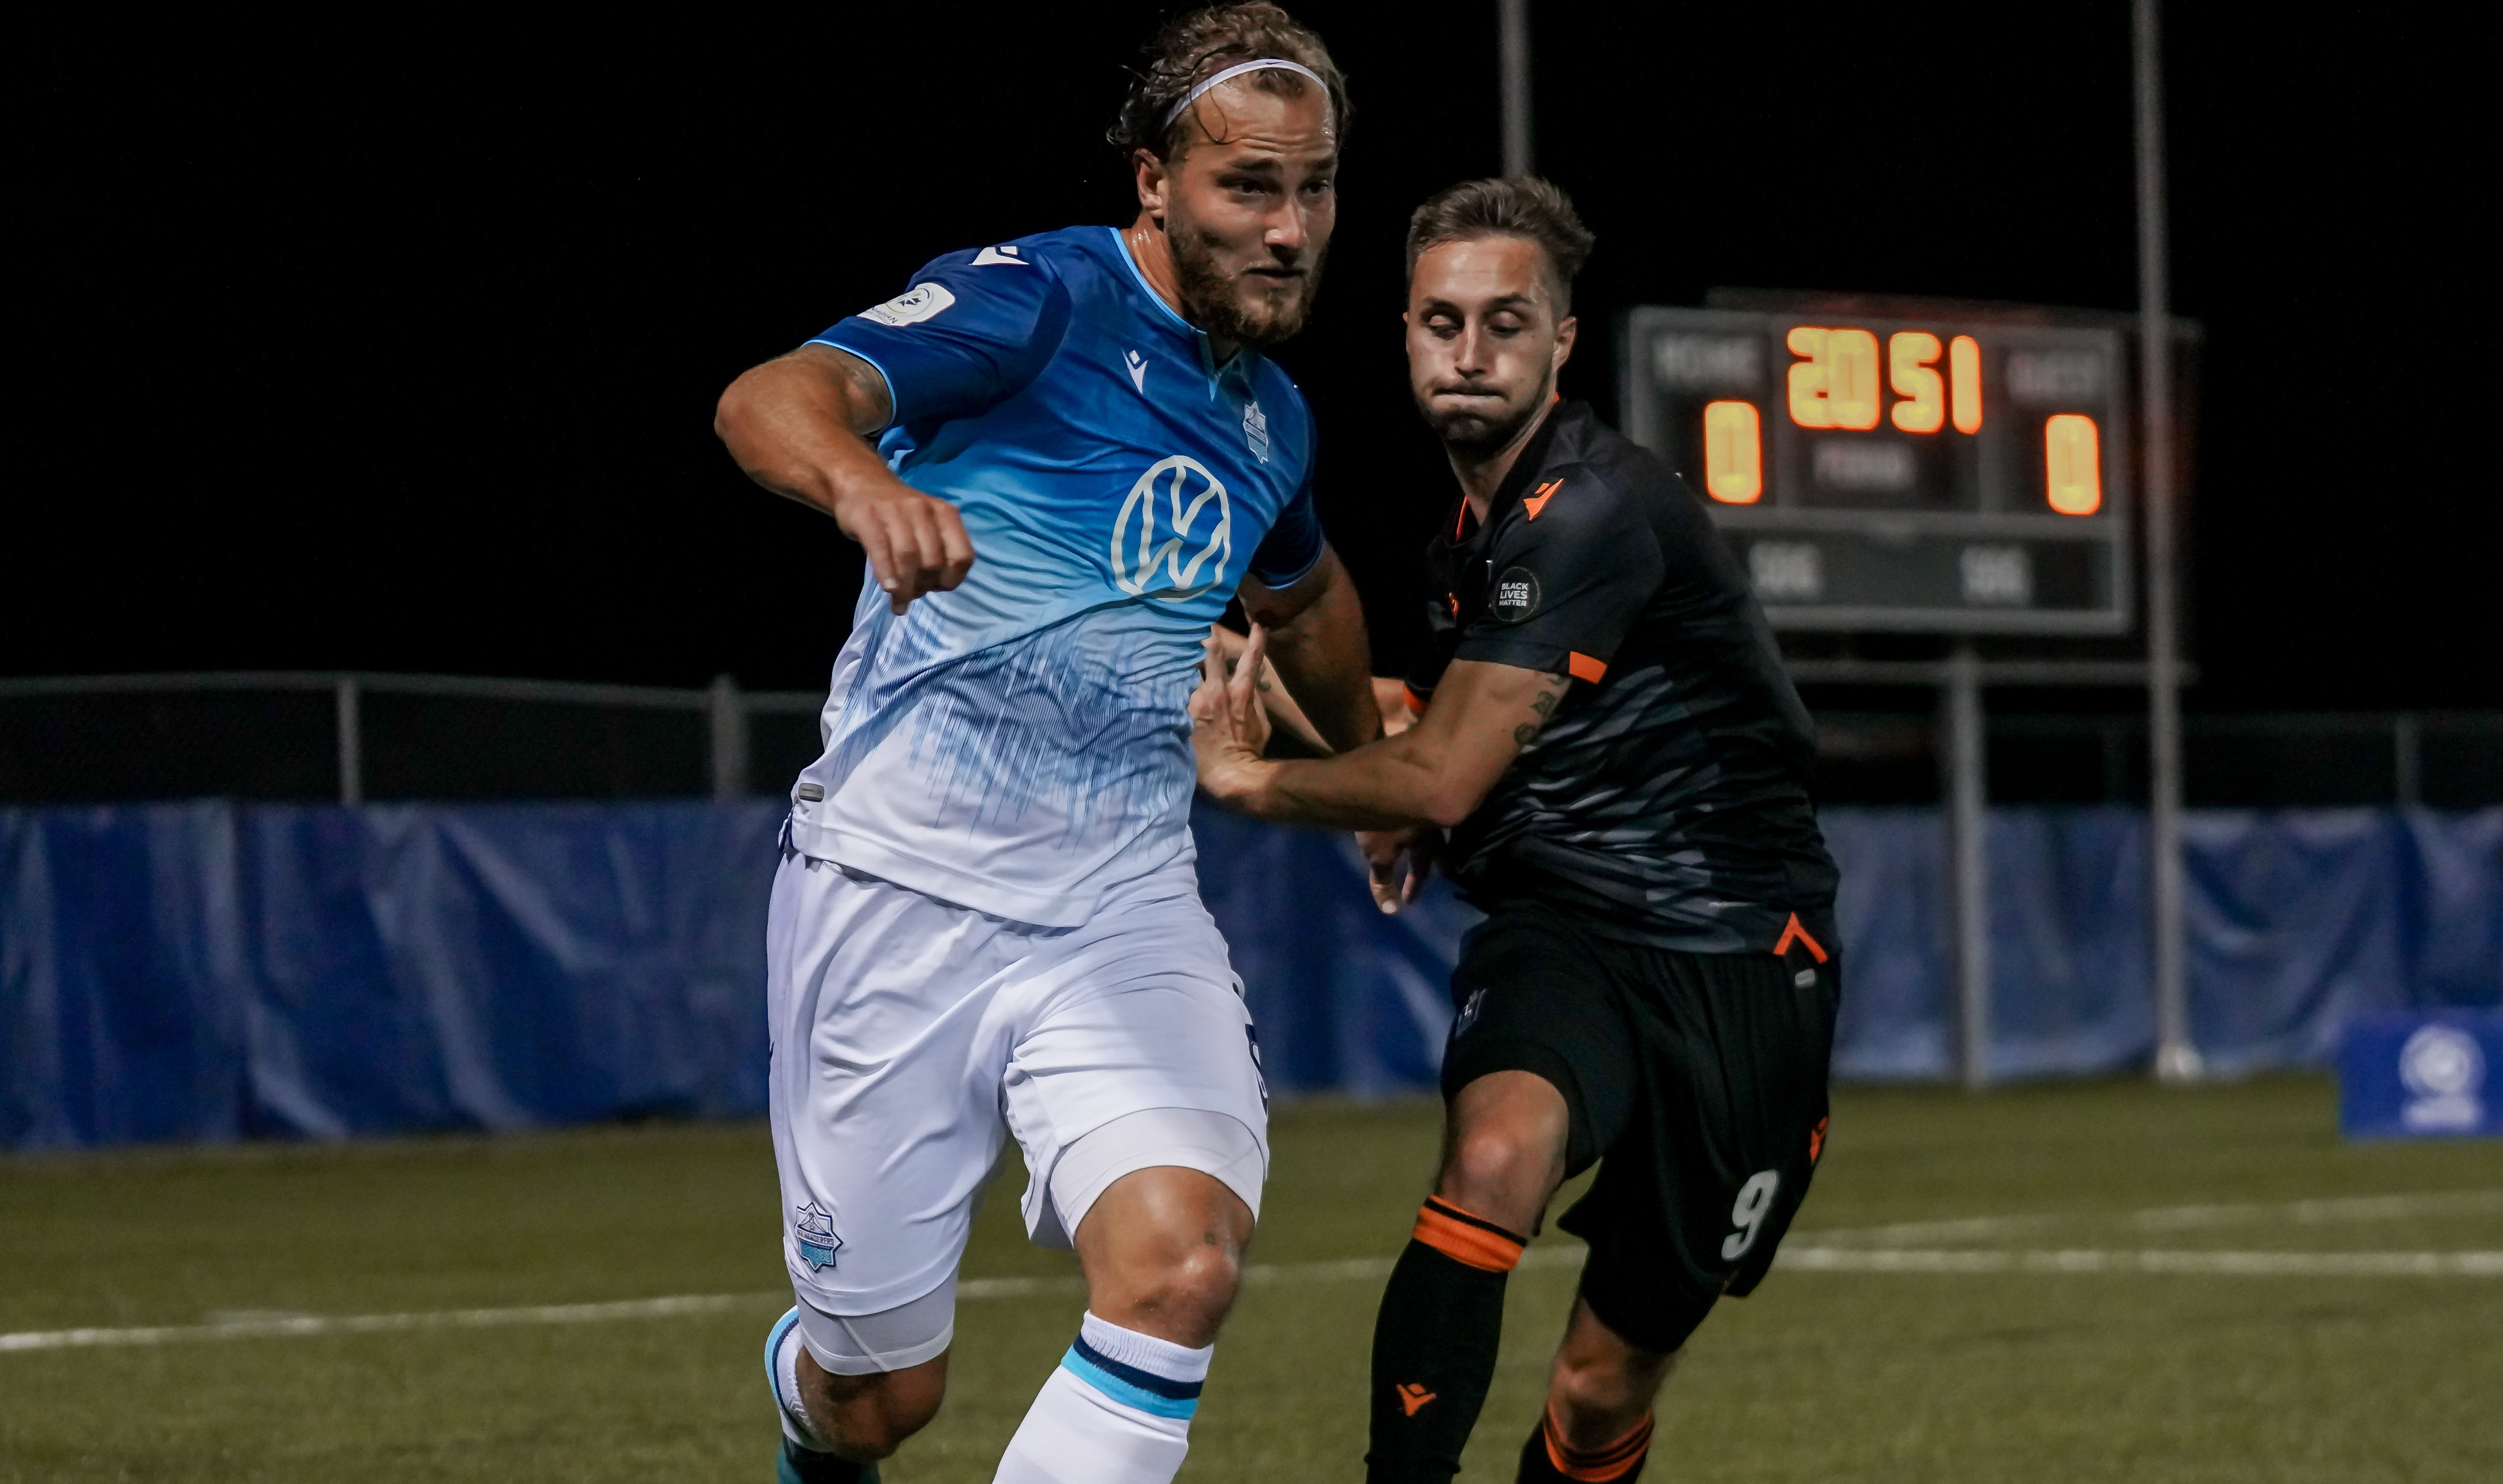 HFX Wanderers defender Peter Schaale and Forge FC attacker Marcel Zajac. (CPL/Chant Photography)